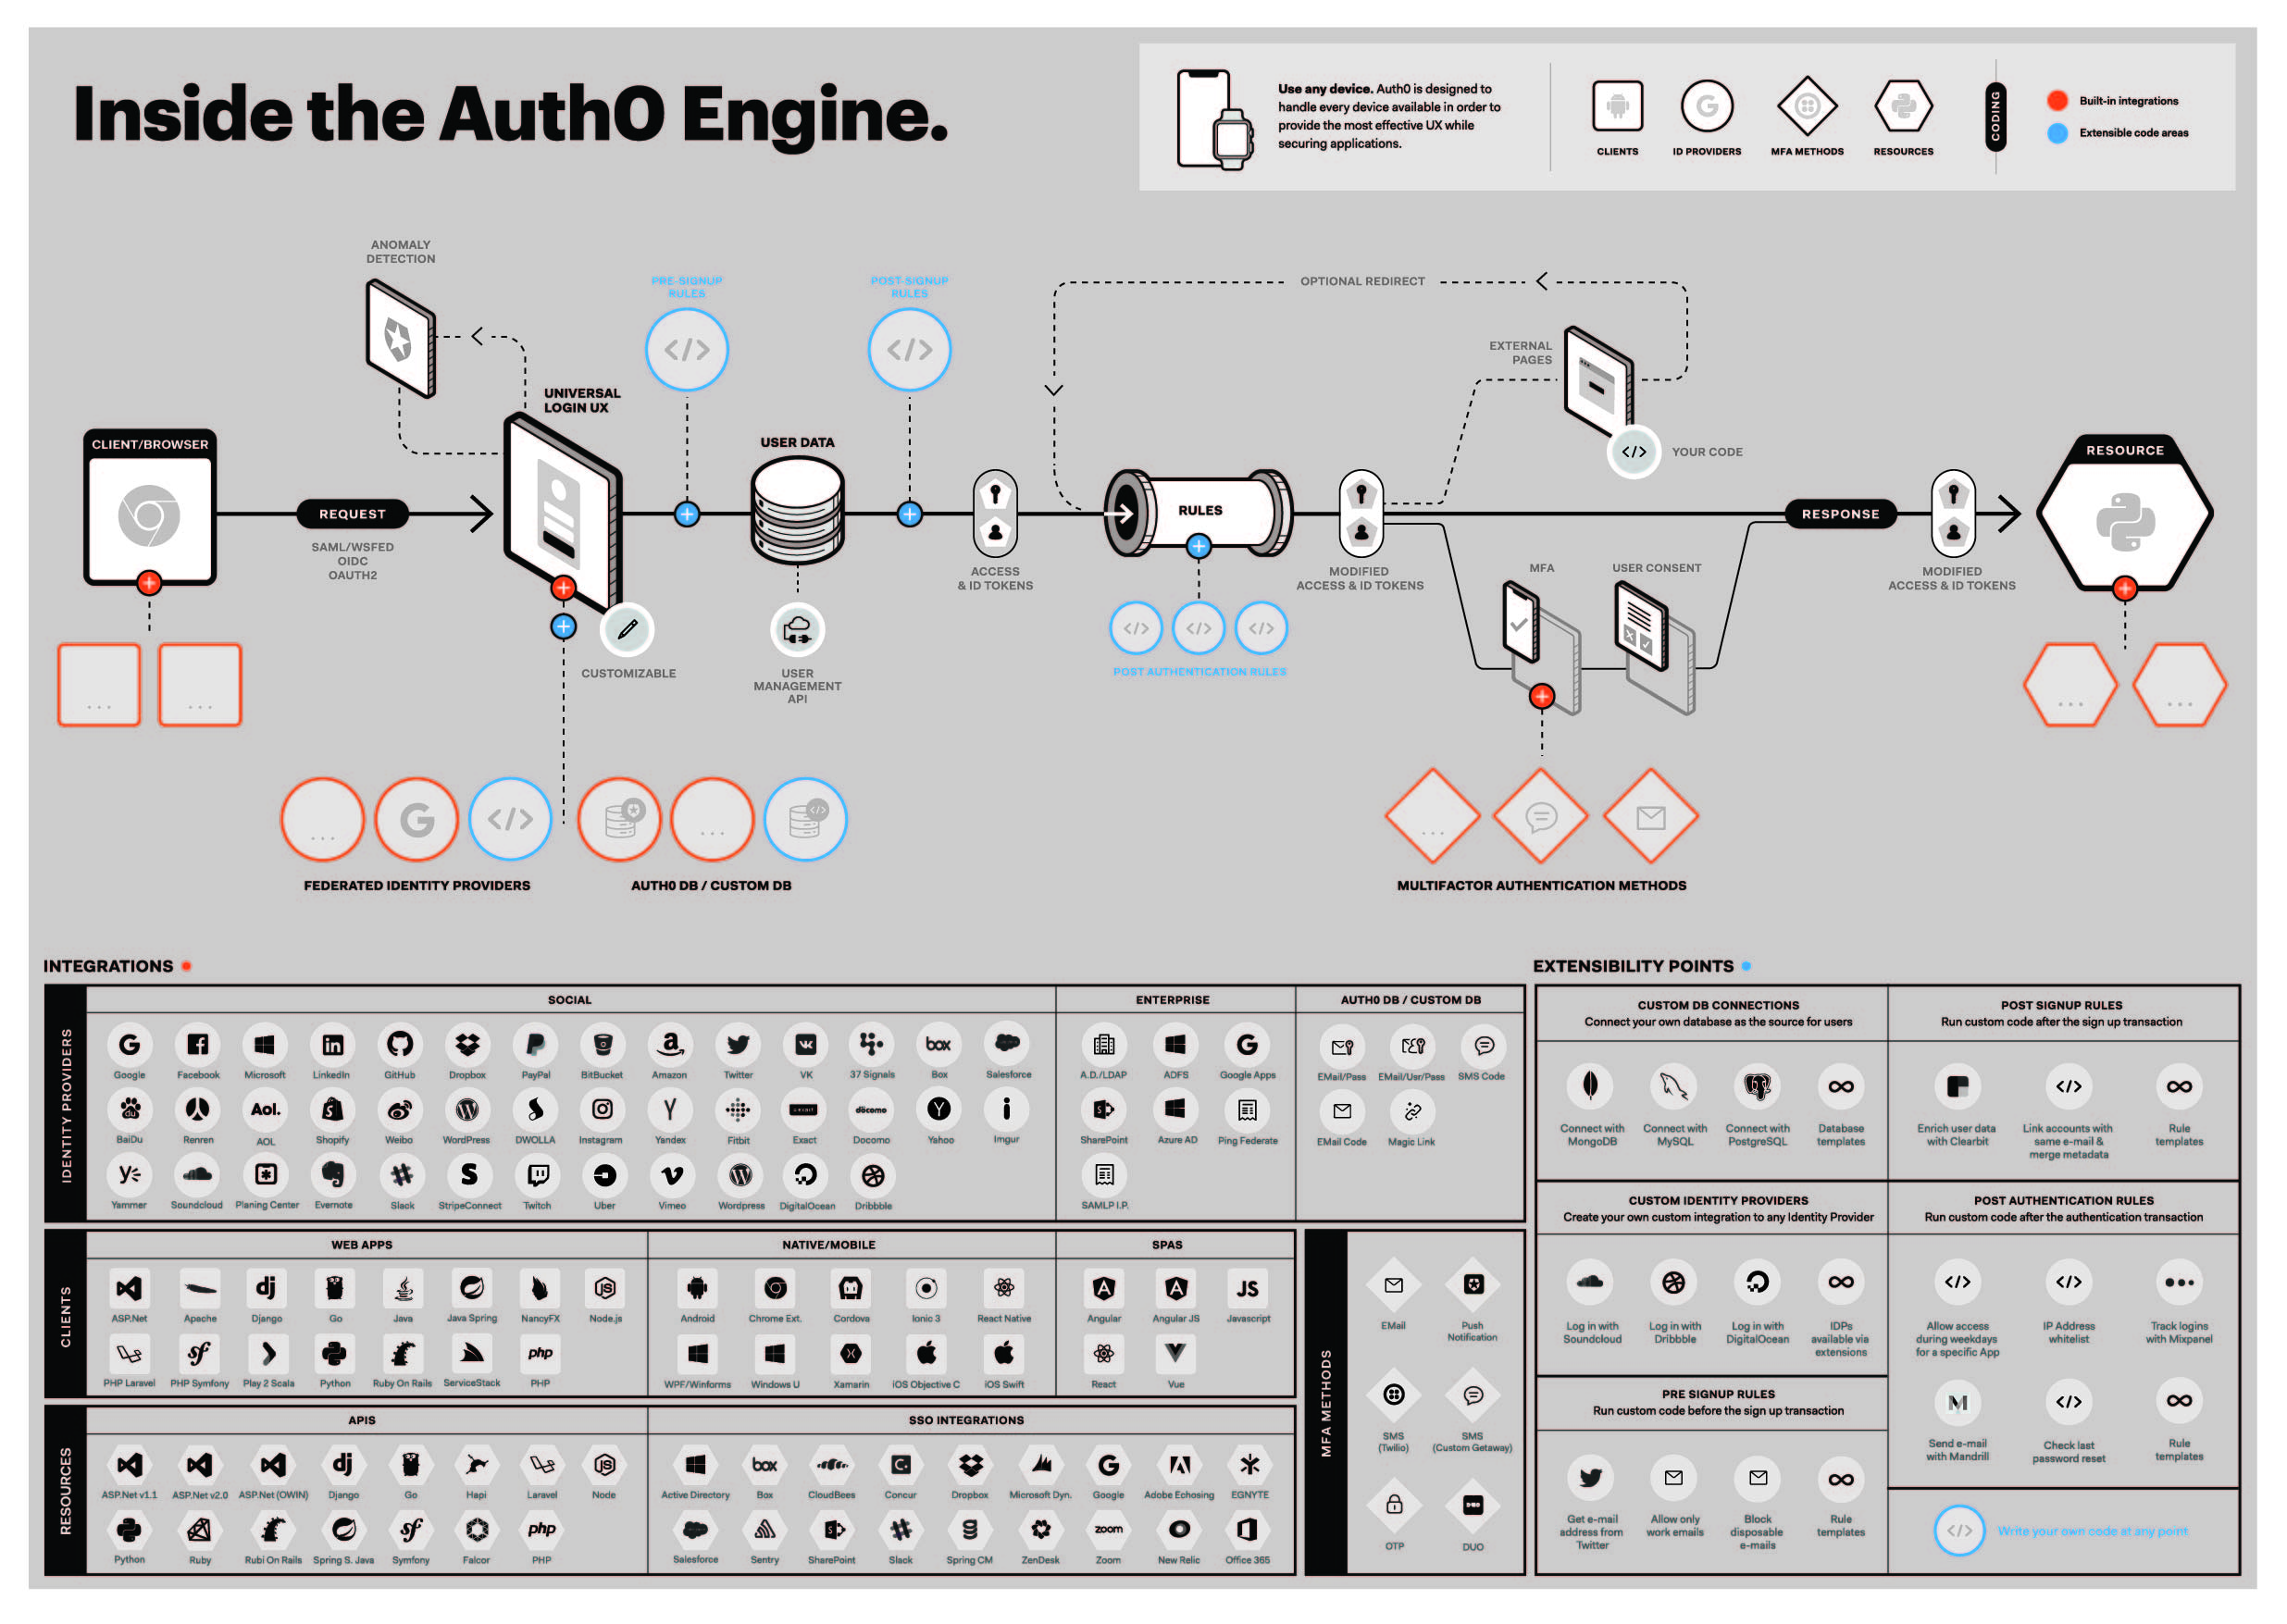 Inside the Auth0 engine